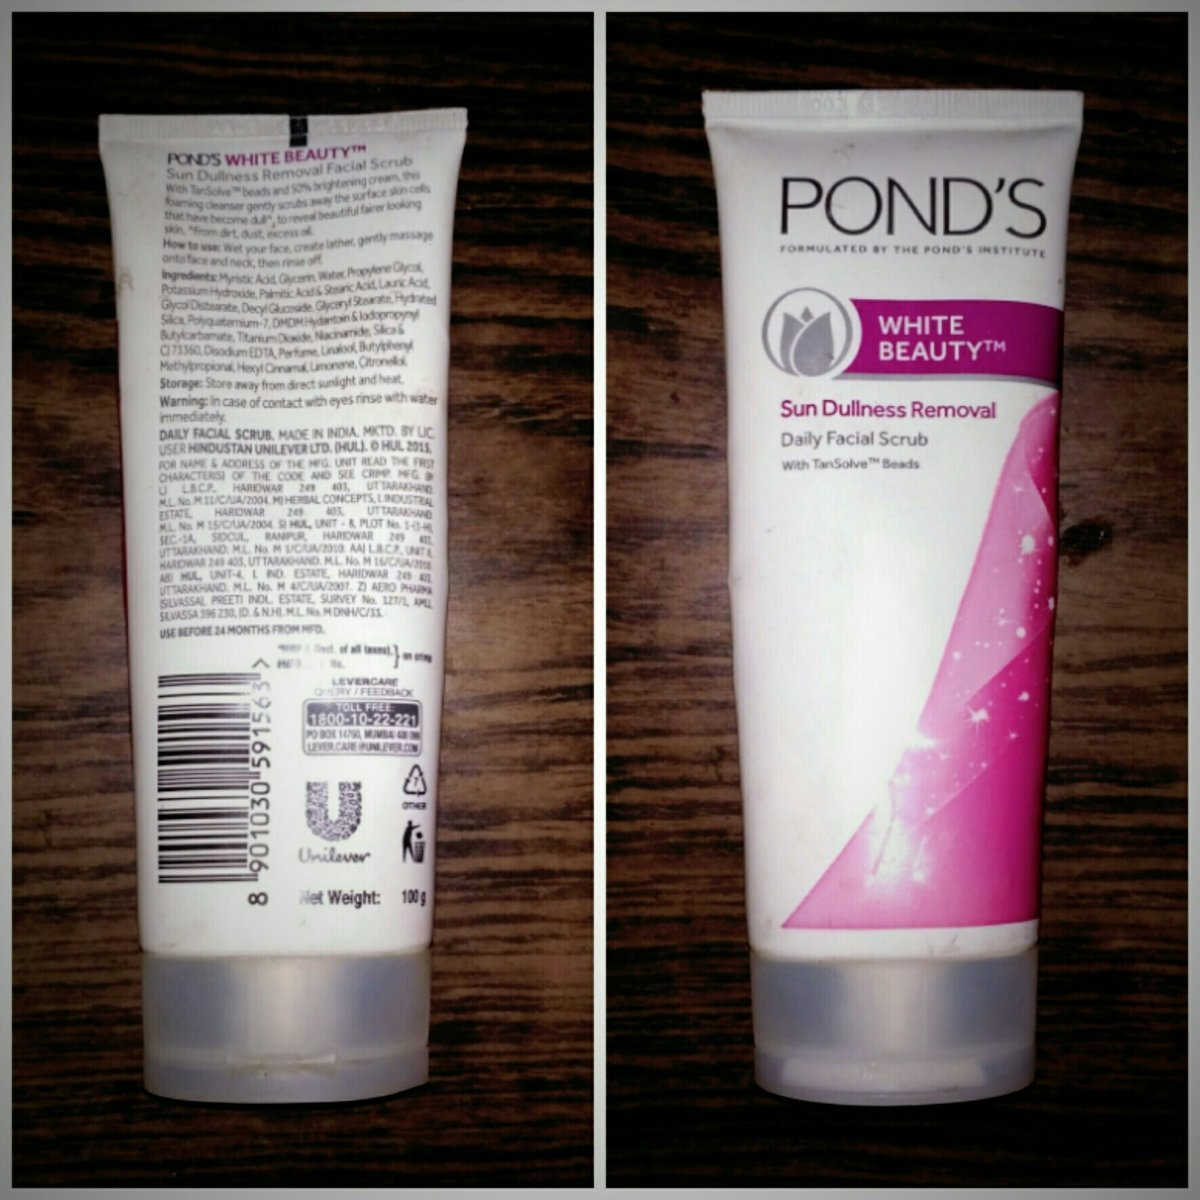 Pond's White Beauty Sun Dullness Removal Daily Facial Scrub Review